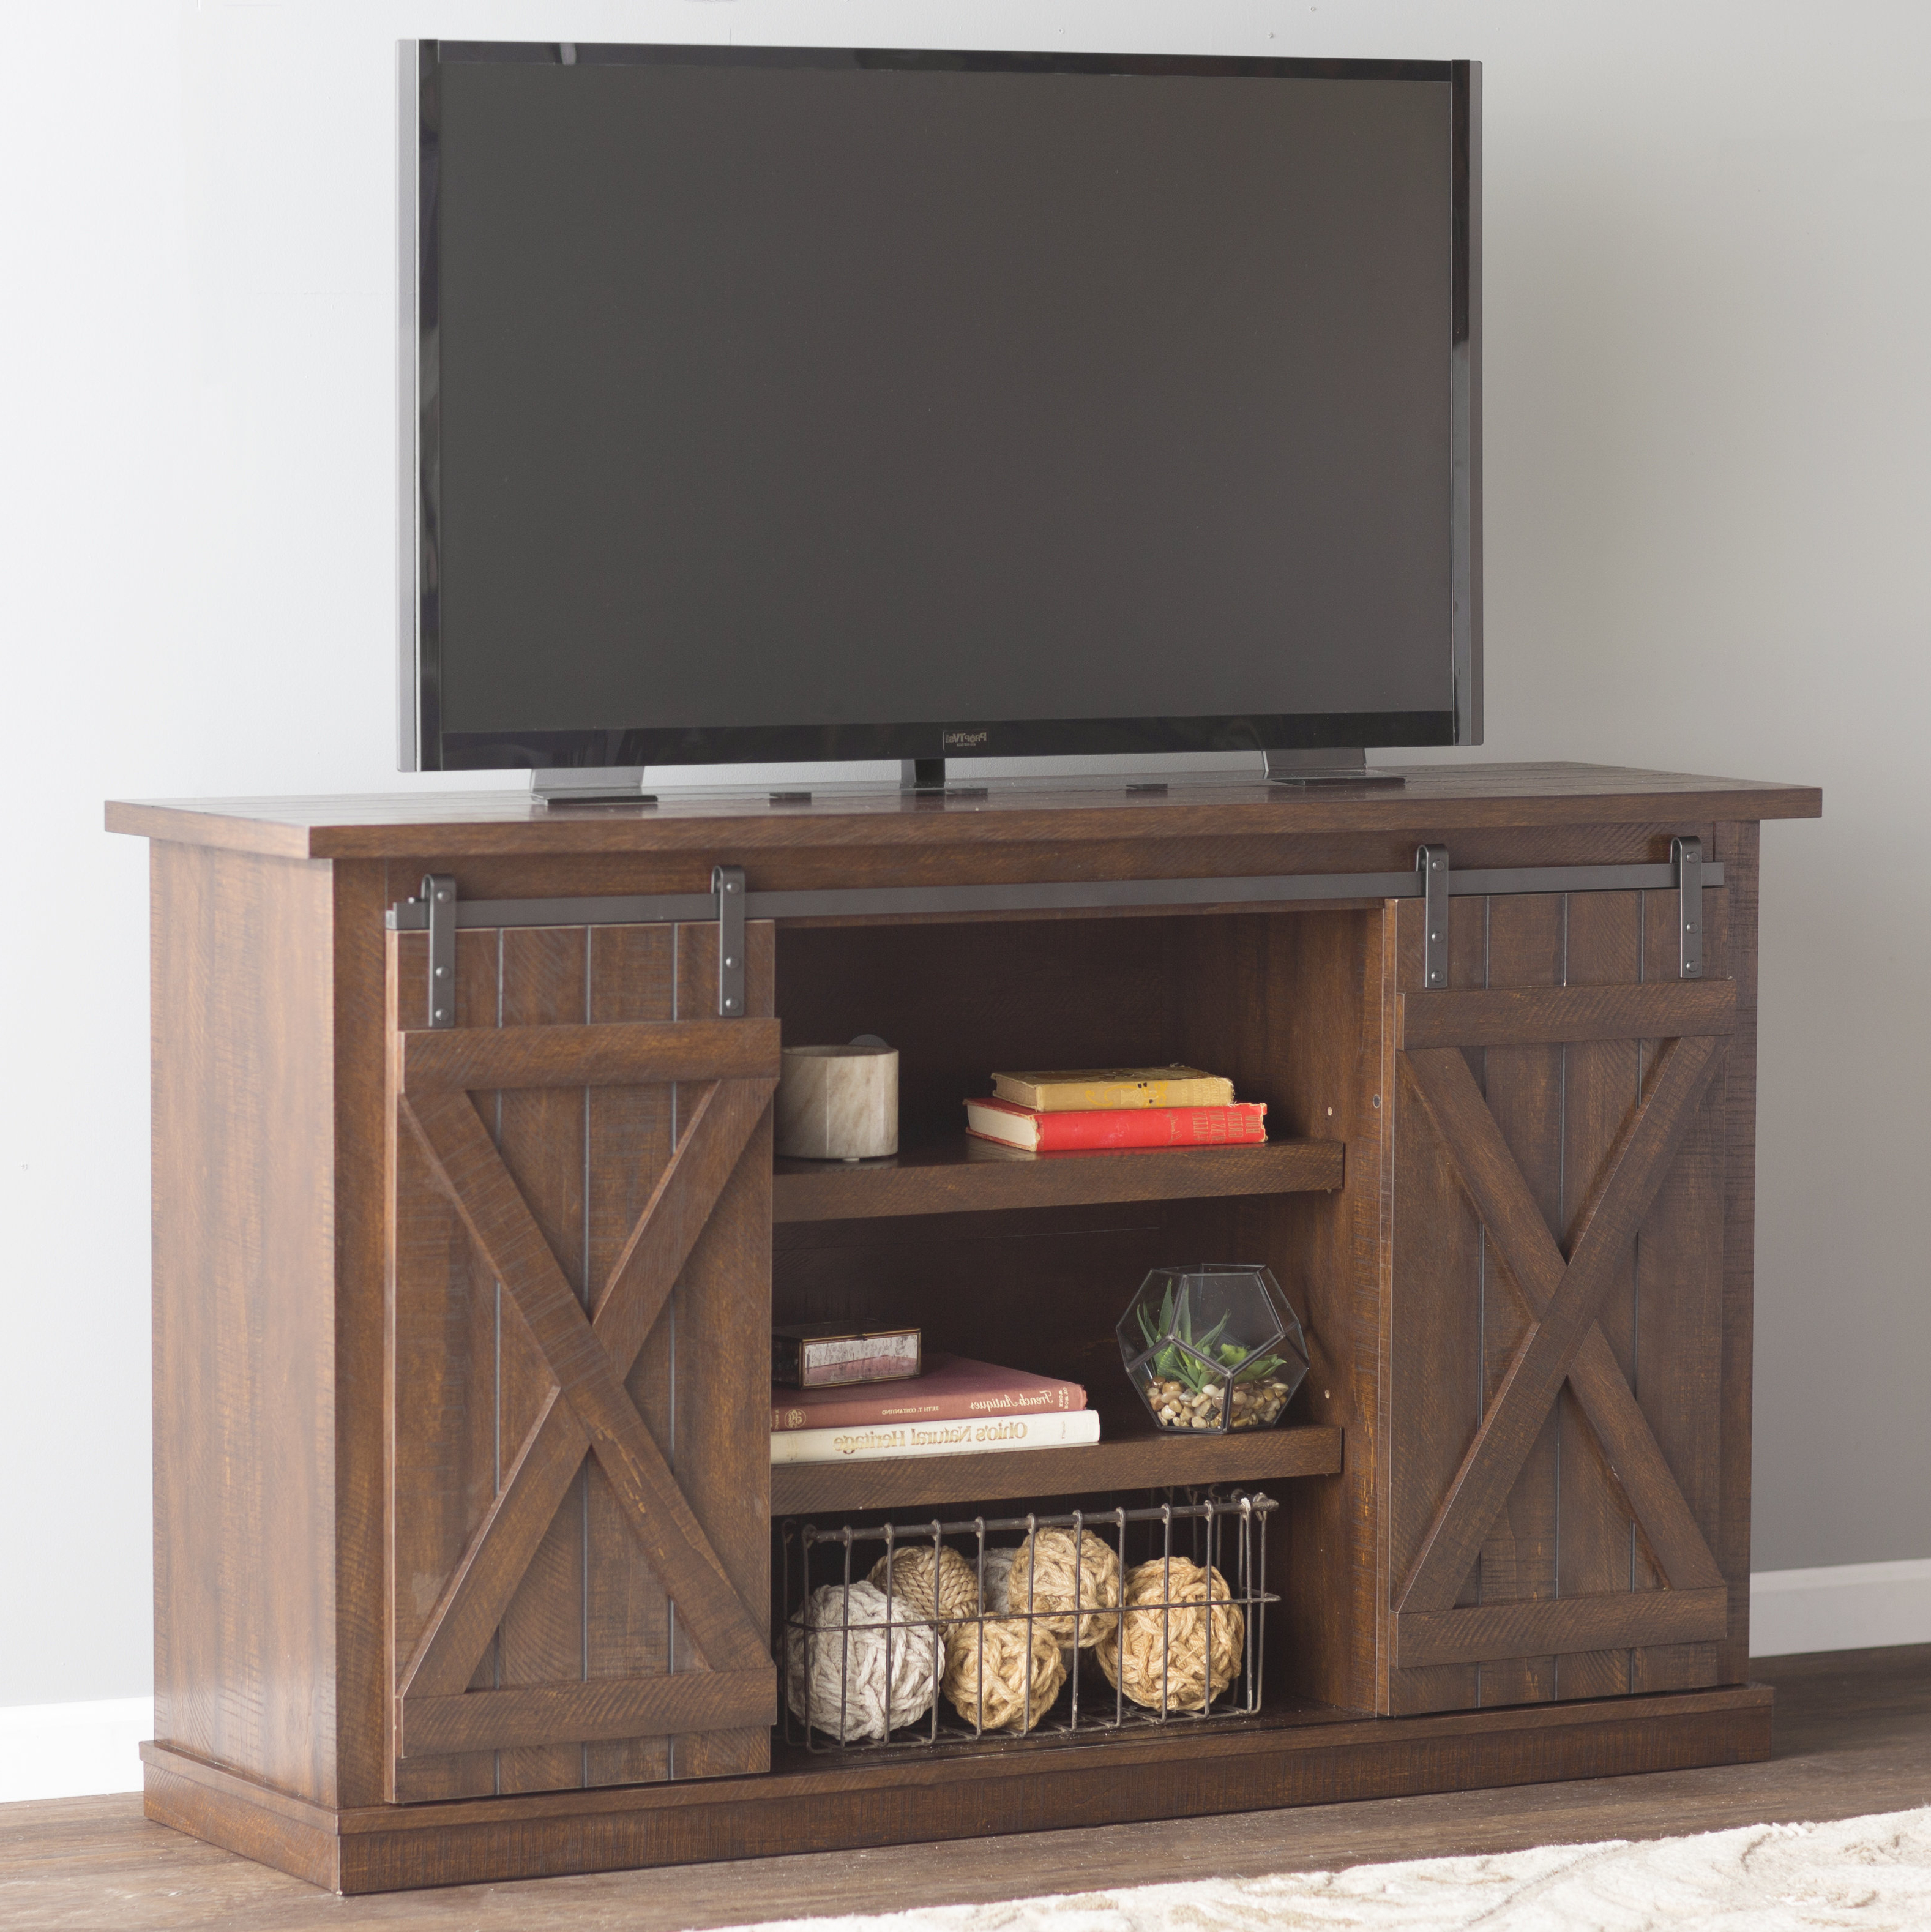 72 Inch Tv Stand | Wayfair Inside Kenzie 60 Inch Open Display Tv Stands (View 5 of 20)